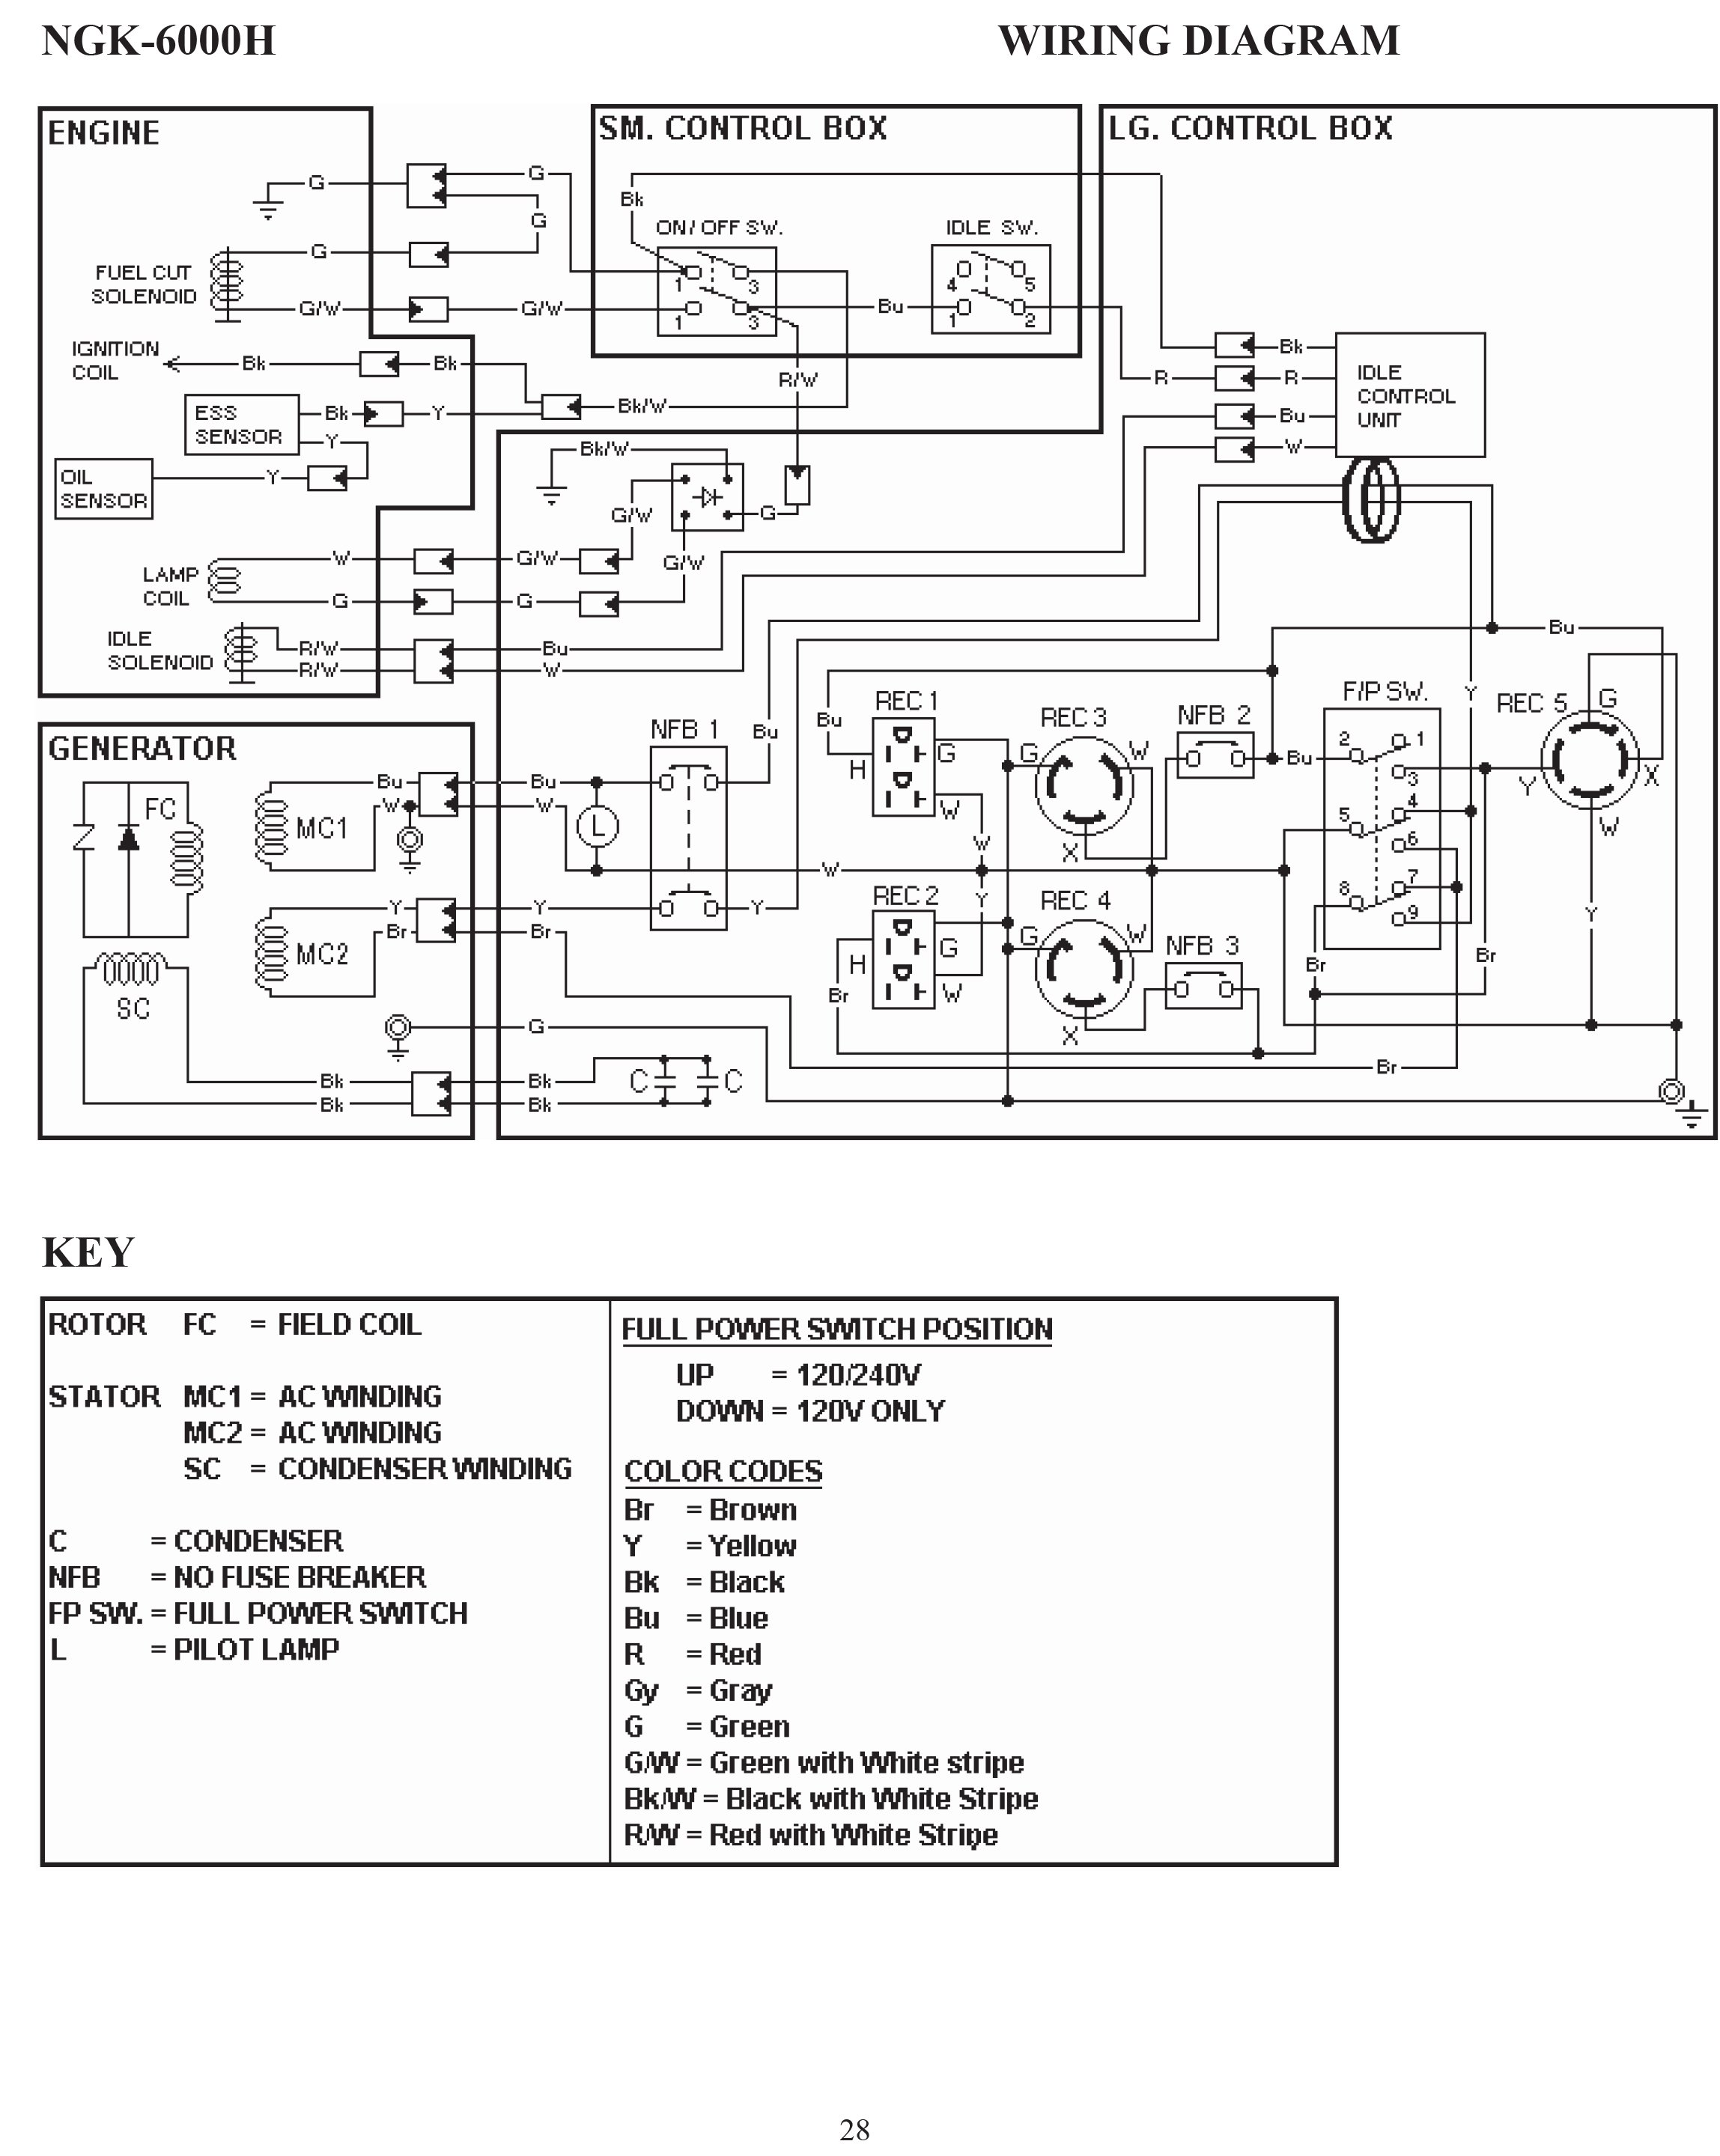 Winnebago onan generator wiring diagram best site